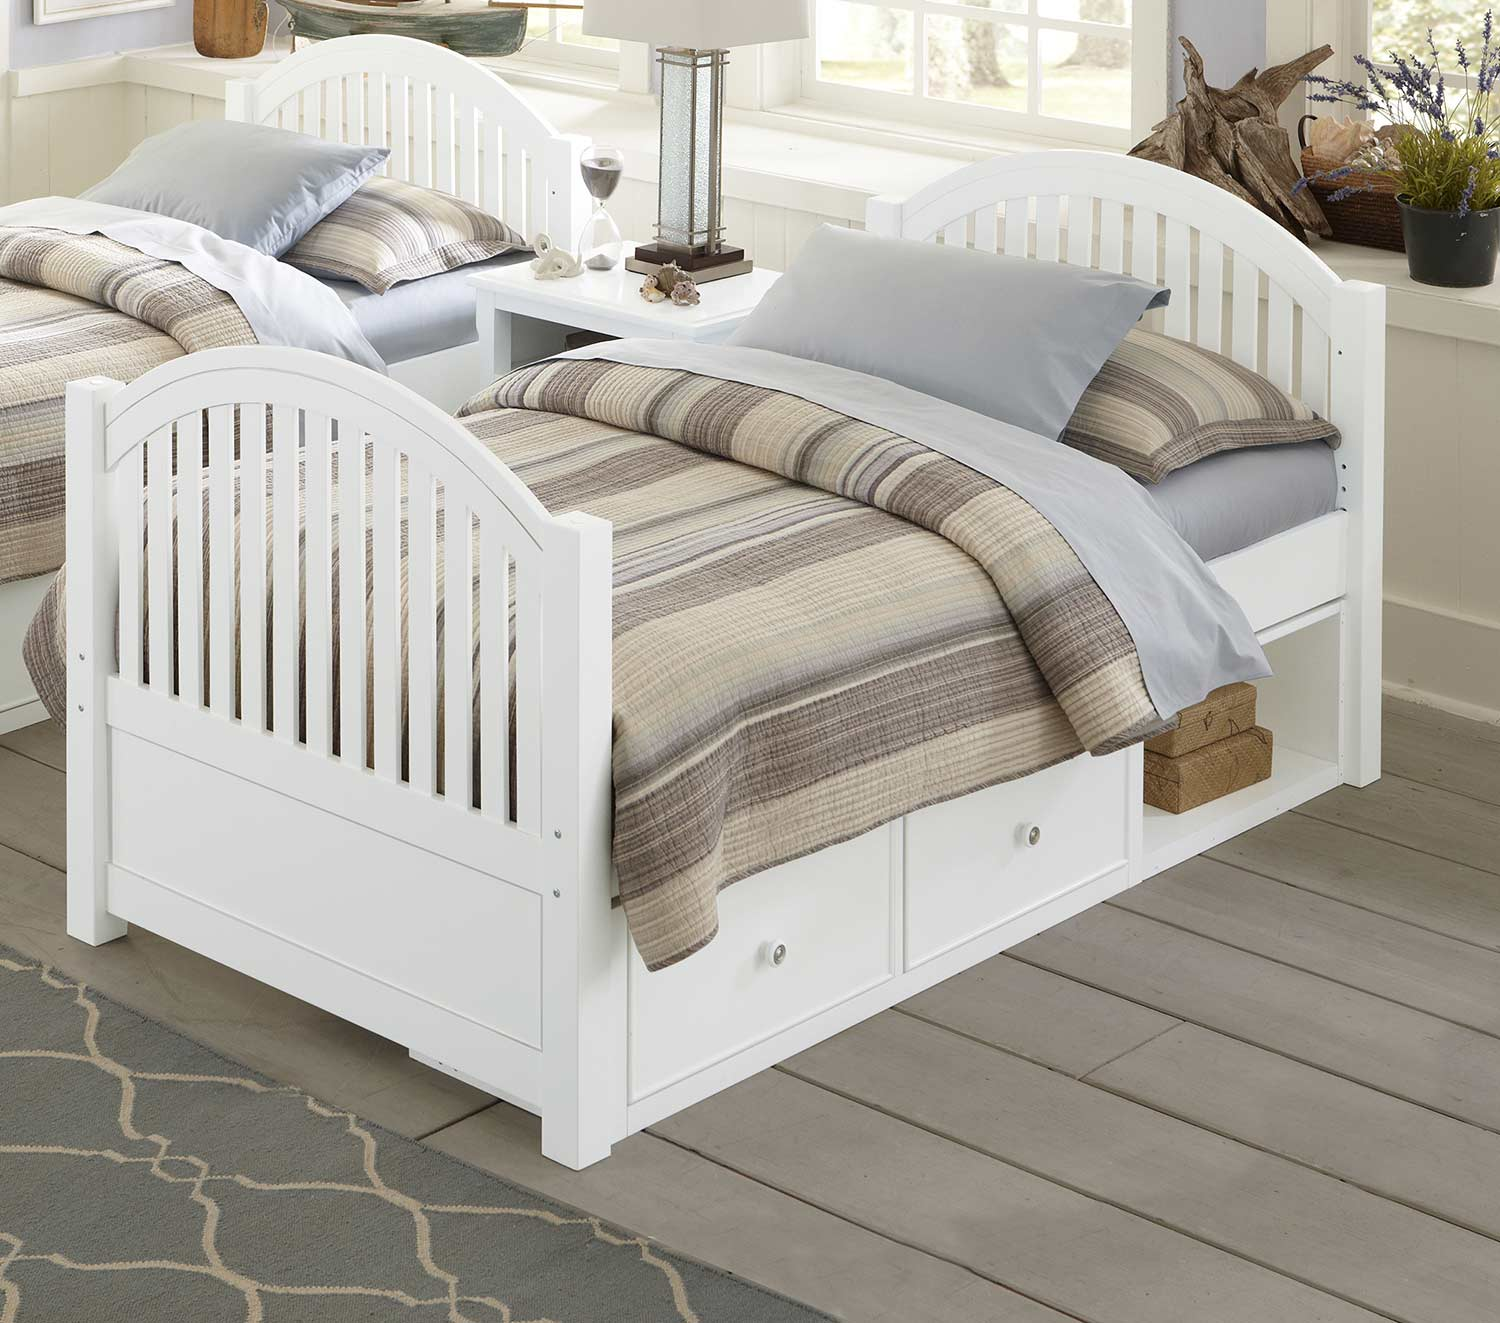 NE Kids Lake House Adrian Twin Bed With Storage - White